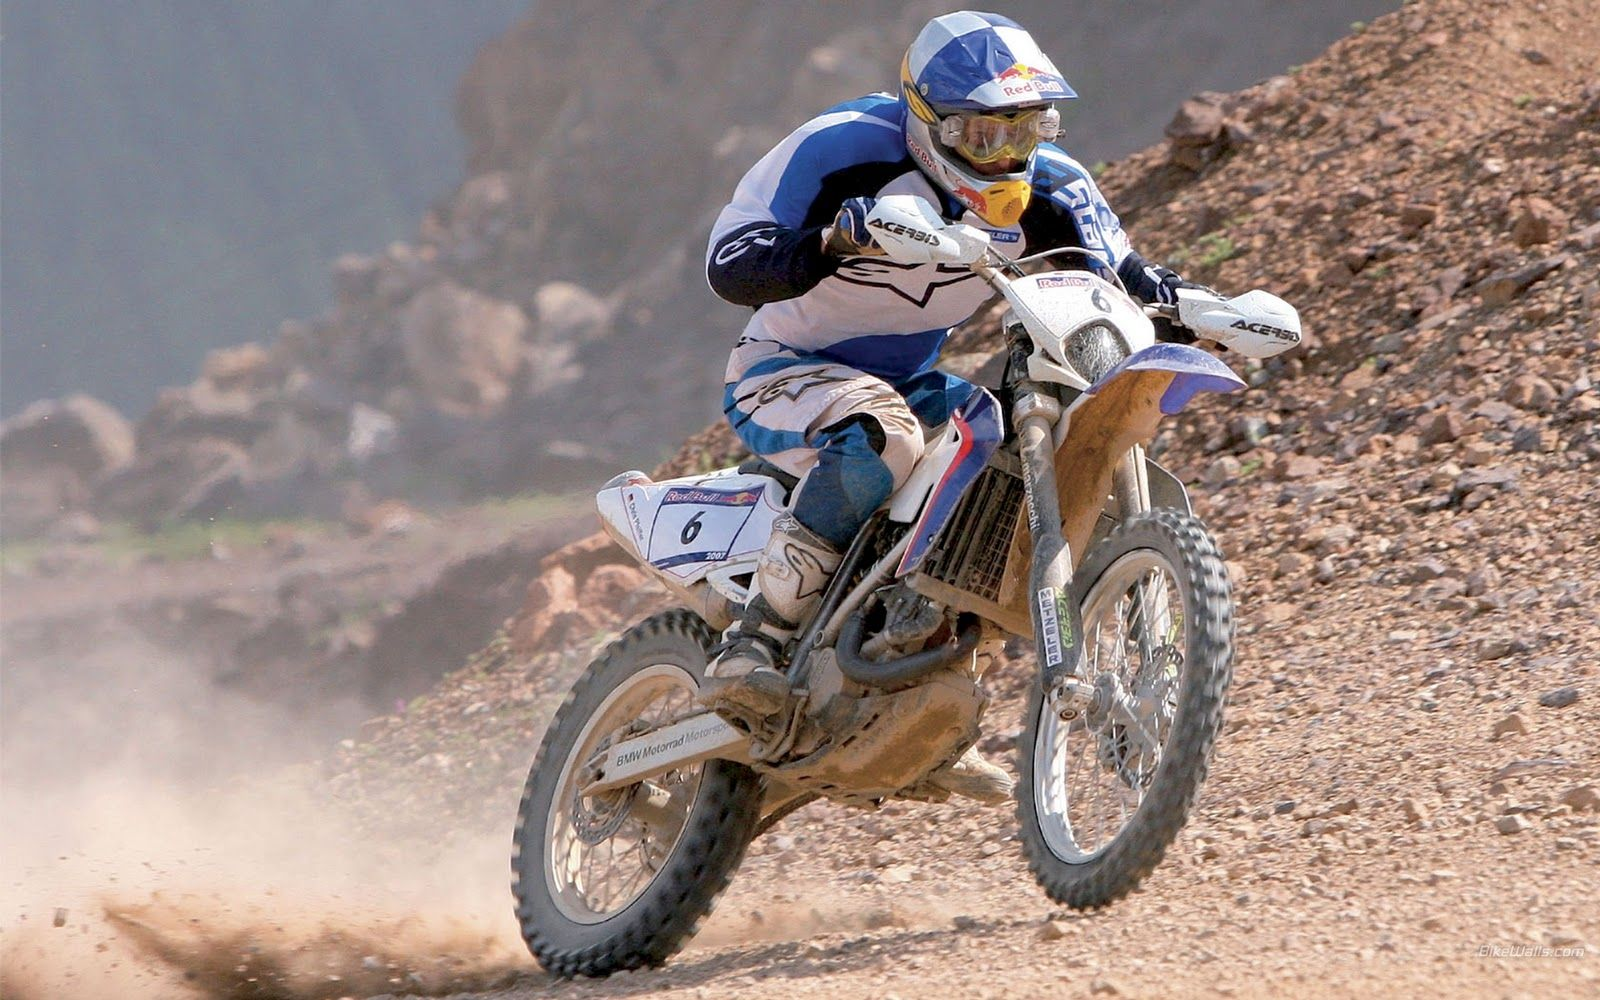 Motorcycle Dirt Bike Bmw Dirt Bike Wallpapers By Great Bike